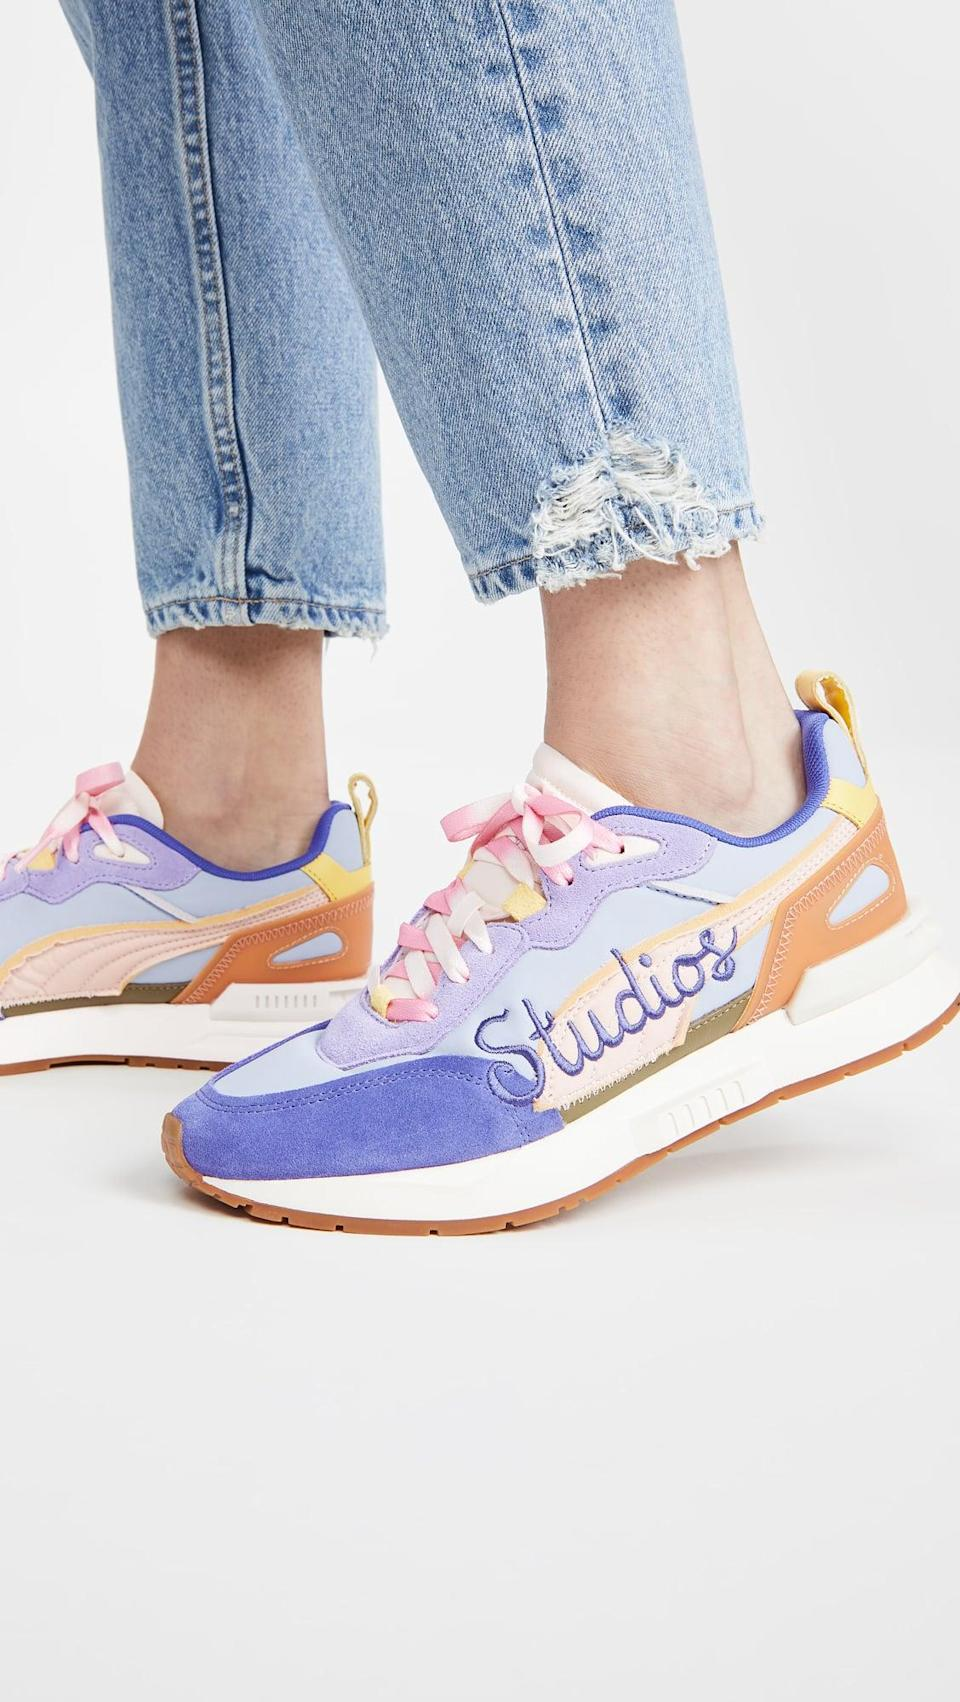 "<p><span>Puma x KidSuper Mirage Mox Sneakers</span> ($130)</p> <p>""The pastel colorway of these Veja sneakers is so dreamy. I'll wear them with a simple tee and jeans so they can get all the attention."" - Macy Cate Williams, senior editor, Shop</p>"